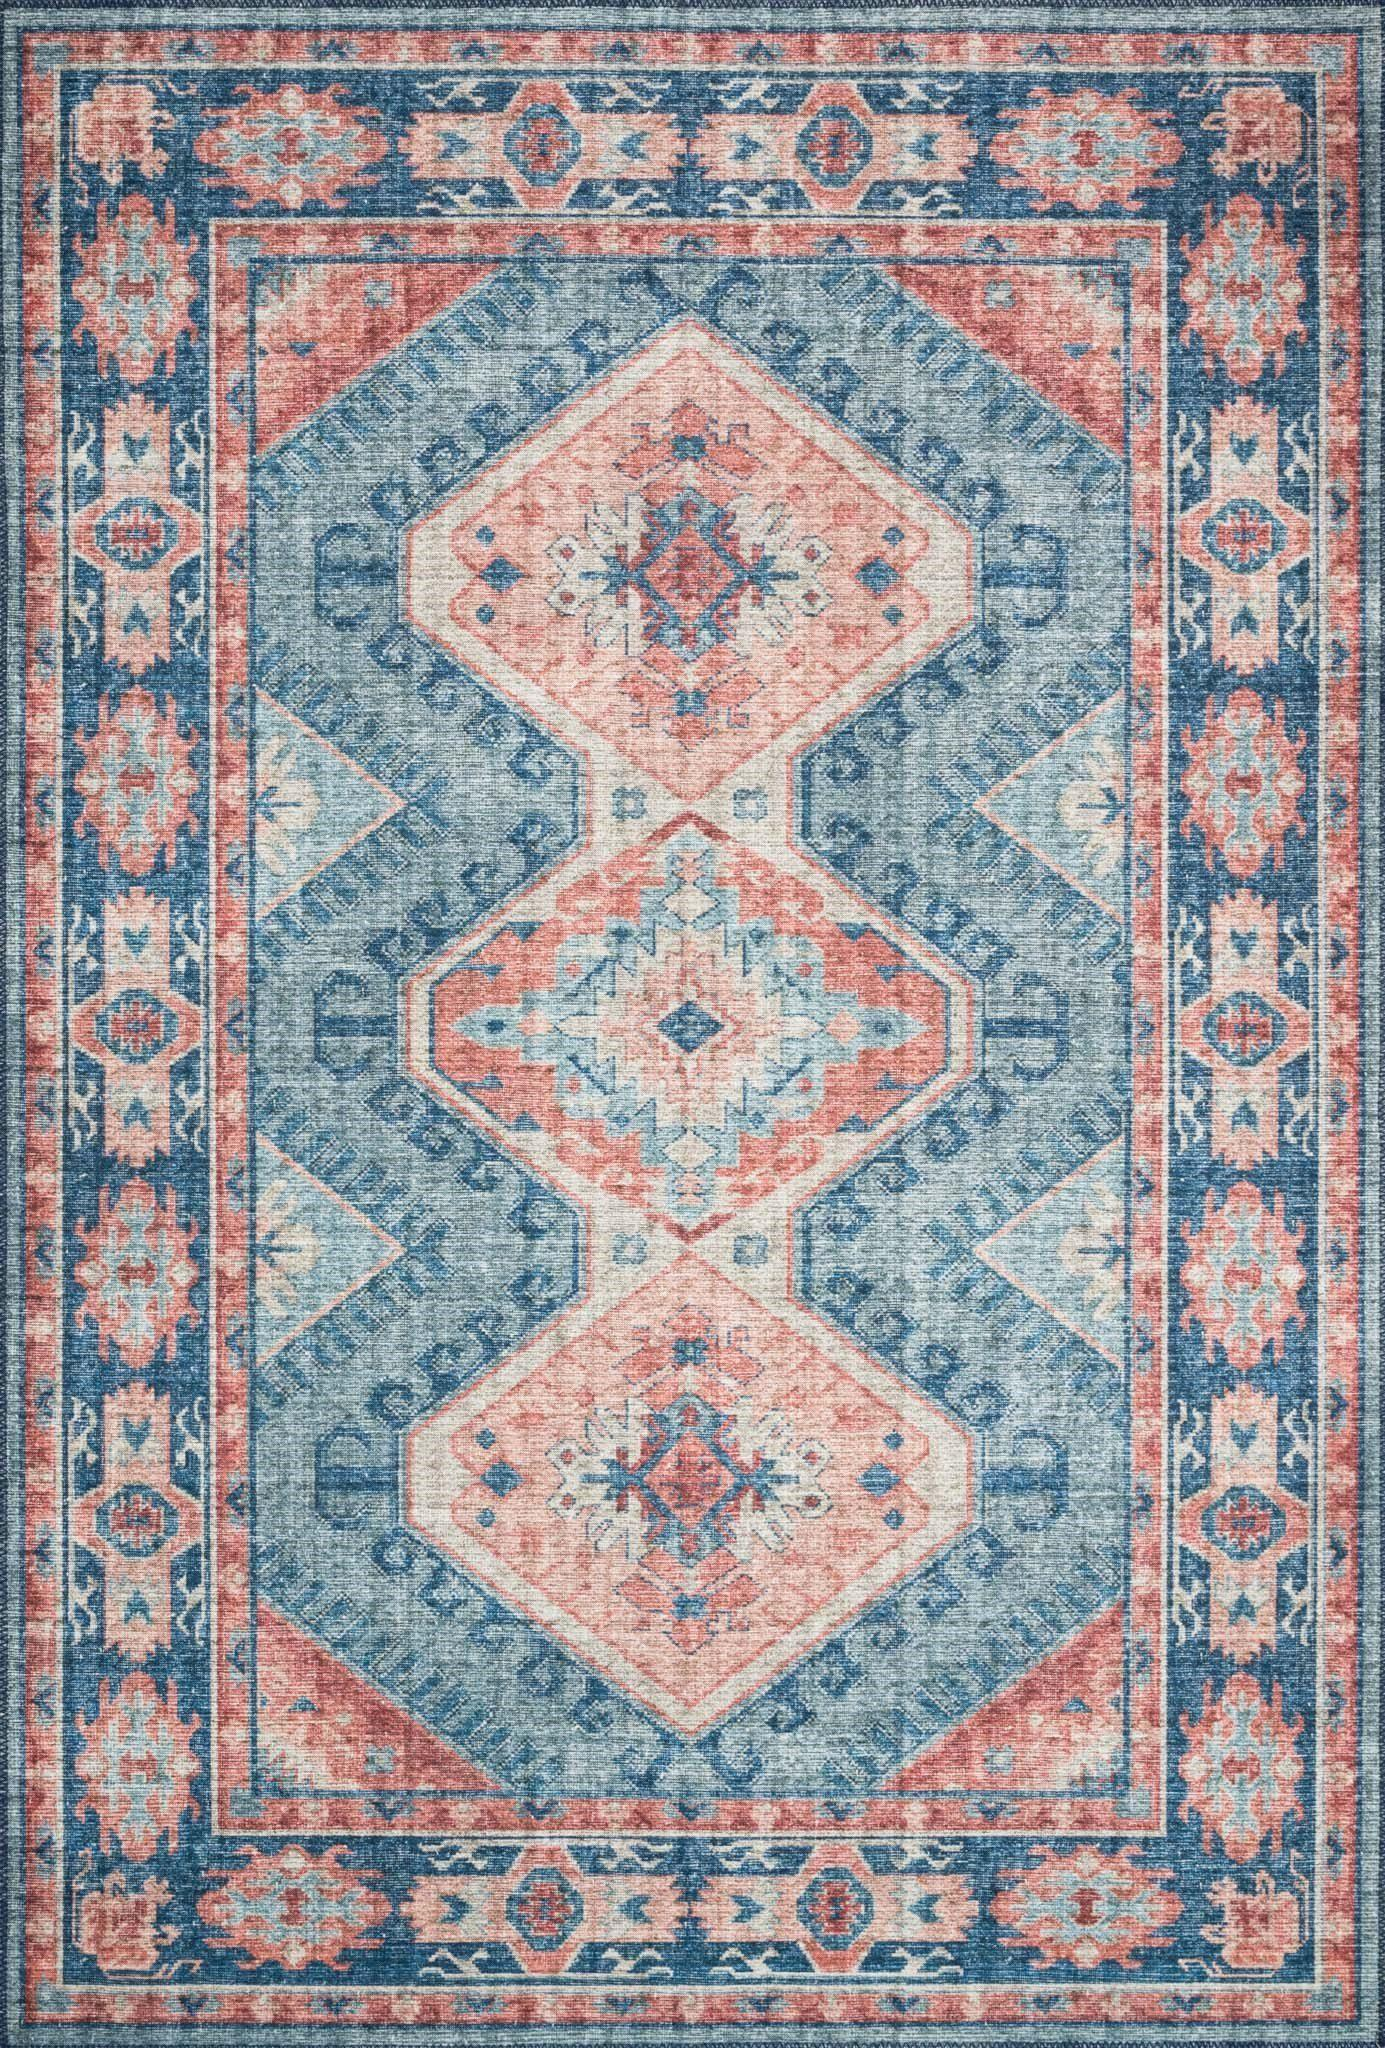 "Skye SKY-03 Turquoise / Terracotta Area Rug-Area Rug-Loloi-1'-6"" x 1'-6"" Square-The Rug Truck"